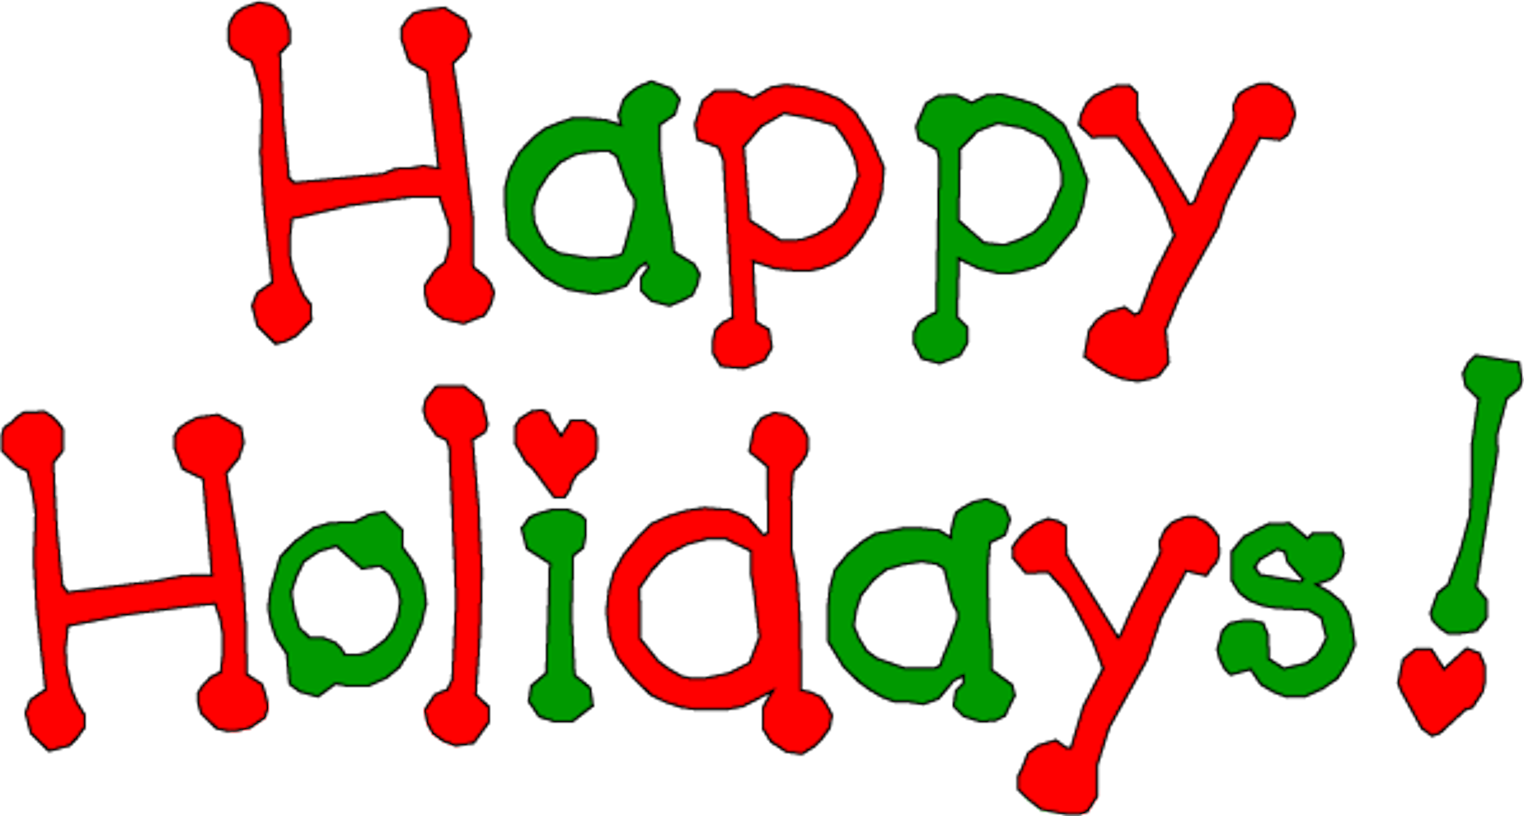 Christmas Holiday Party Clipart.